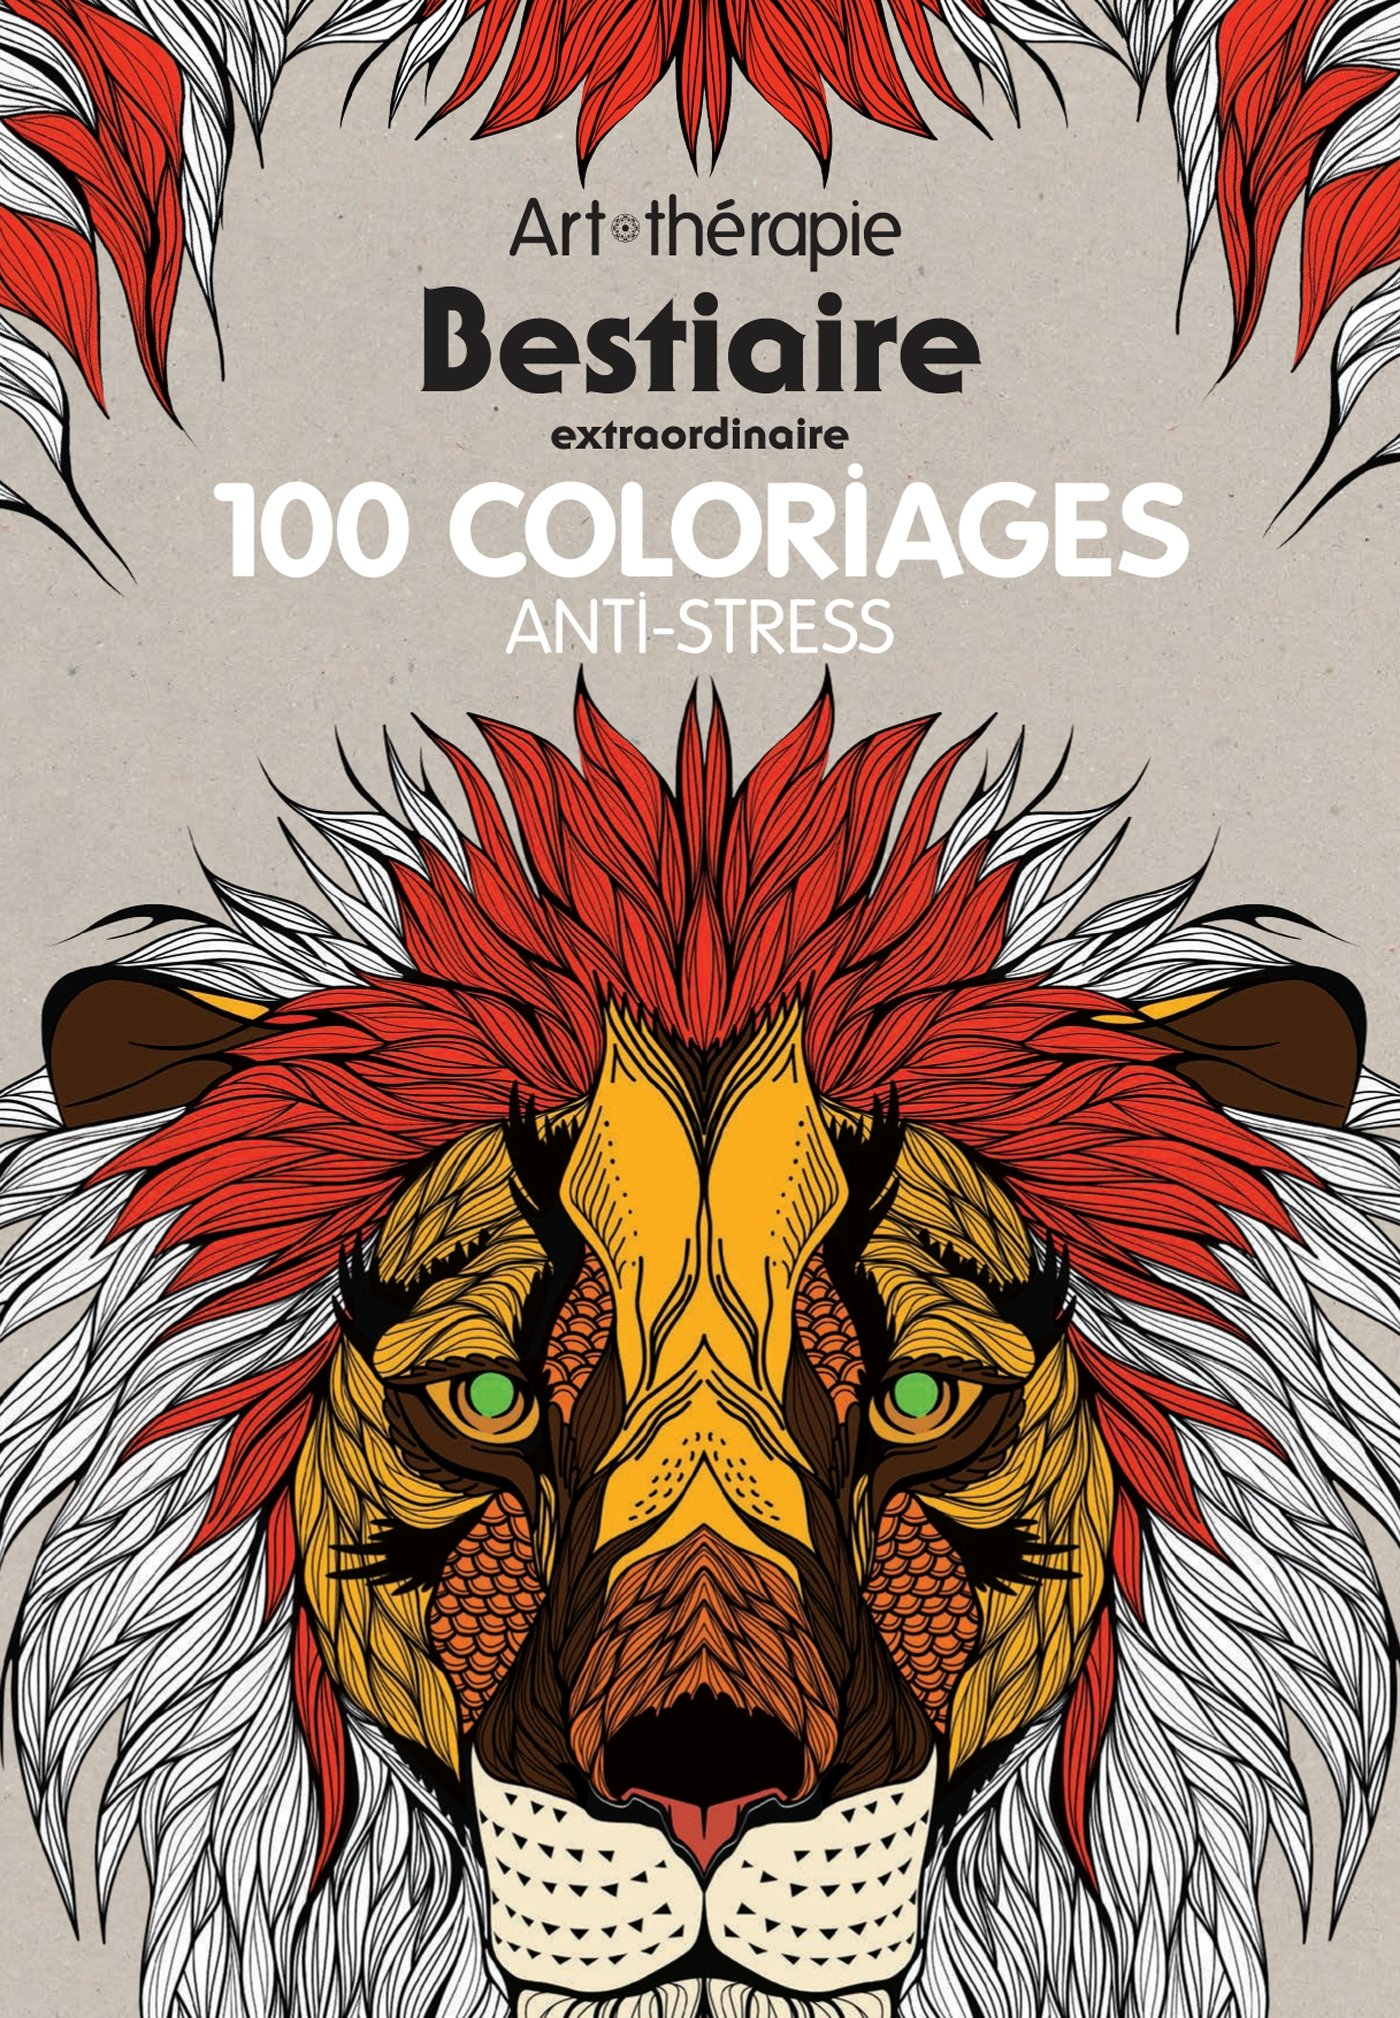 Bestiaire extraordinaire : 100 coloriages anti-stress